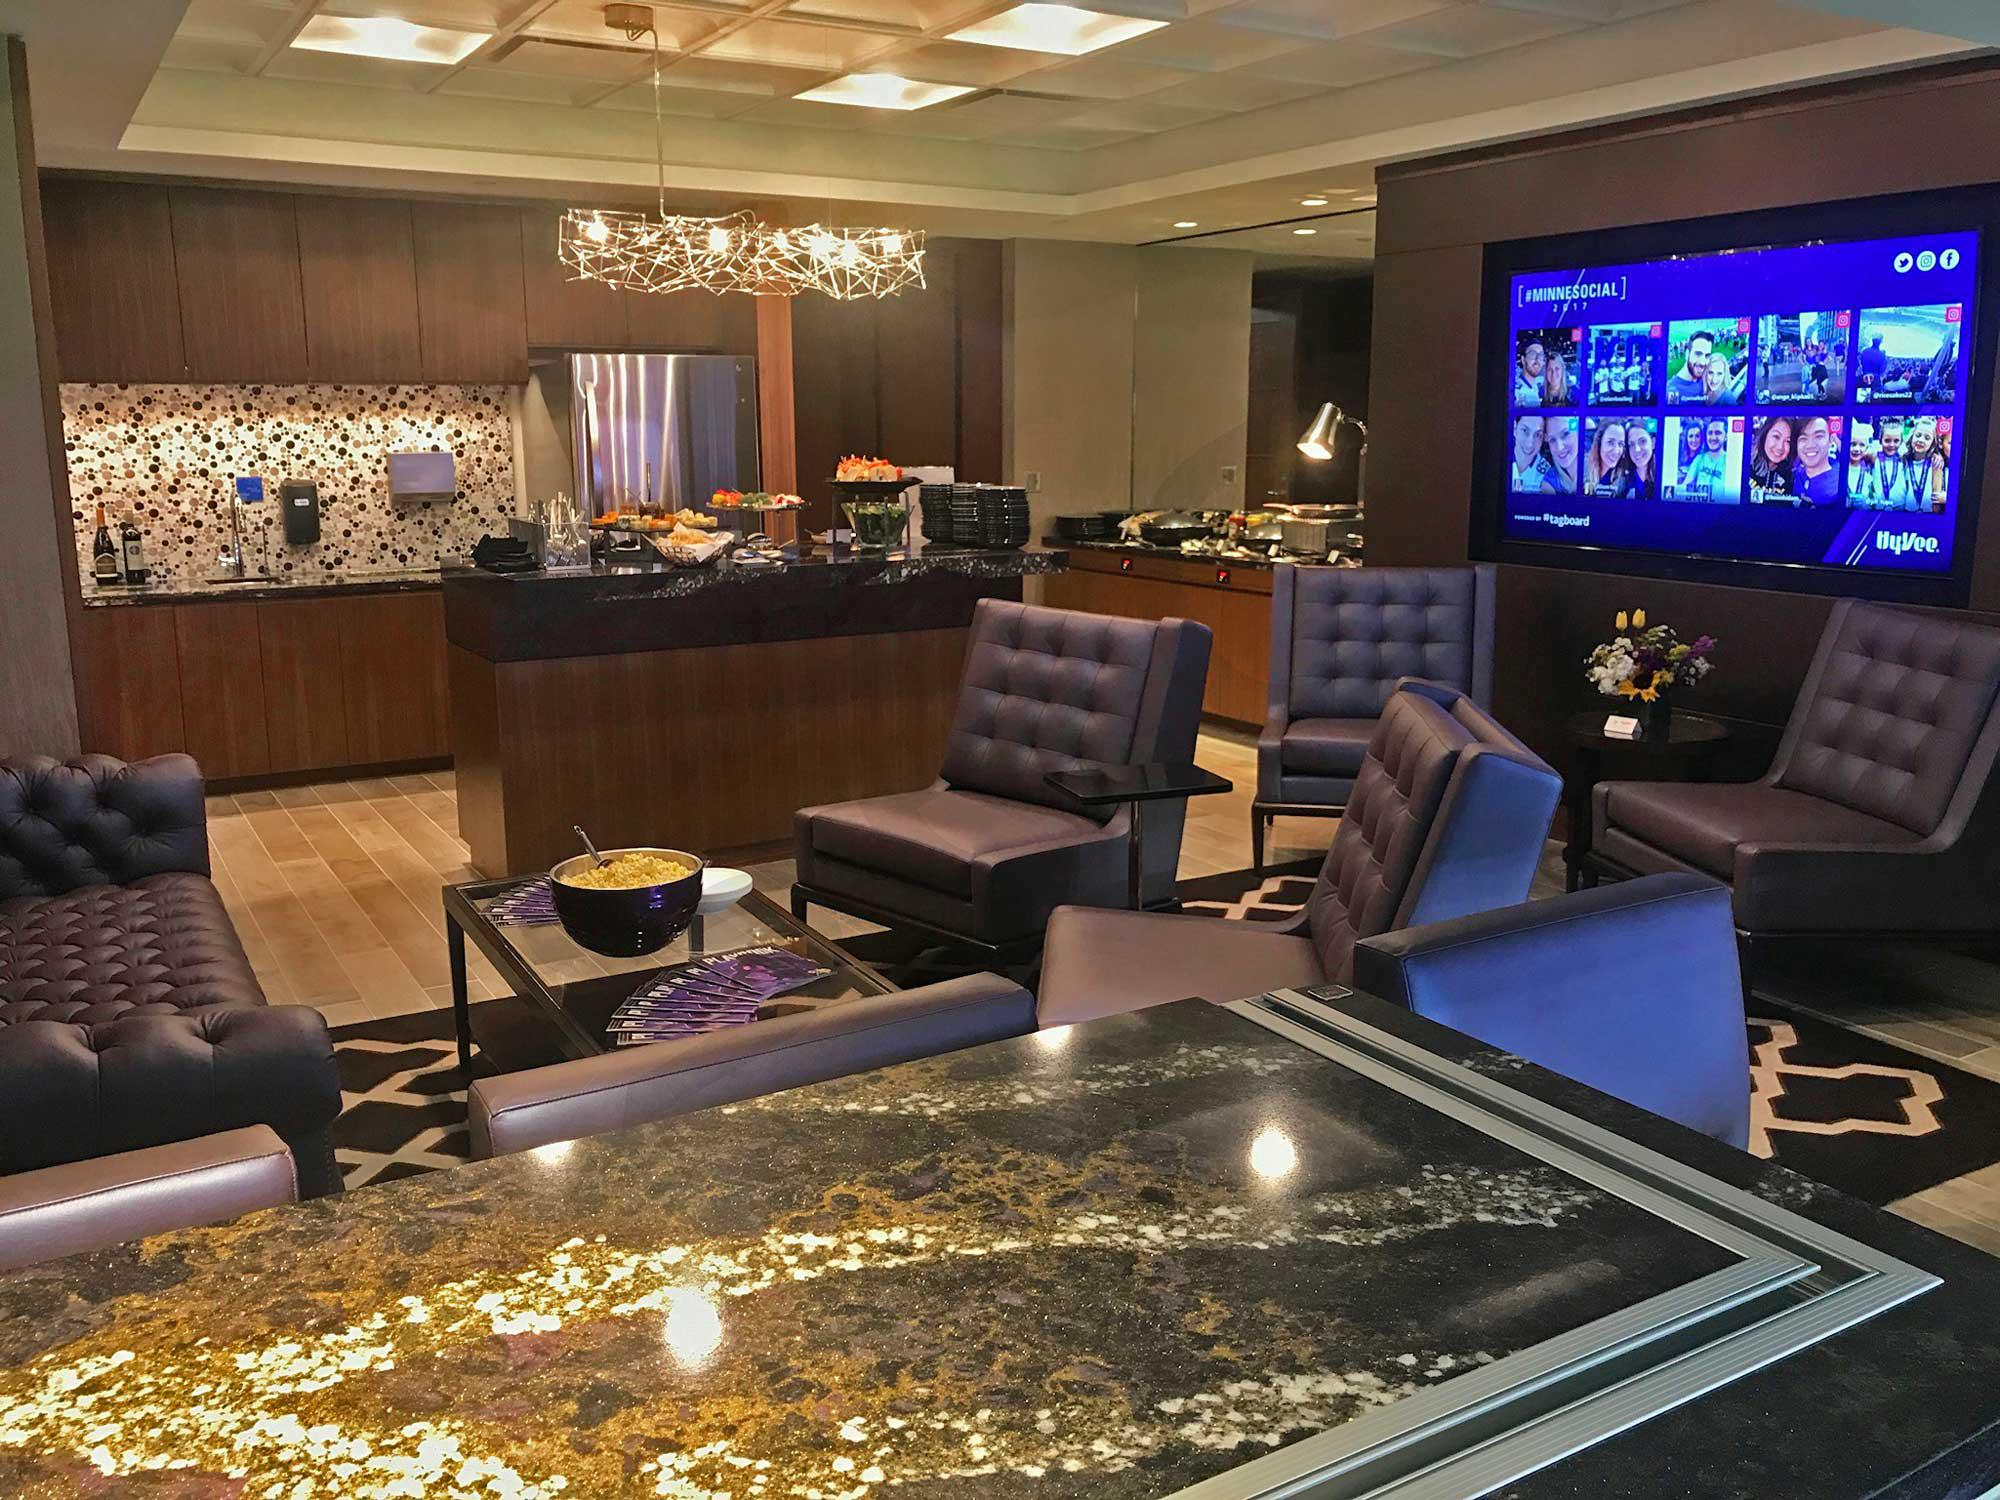 Super bowl lii suites for rent suite experience group for Rent a center living room groups